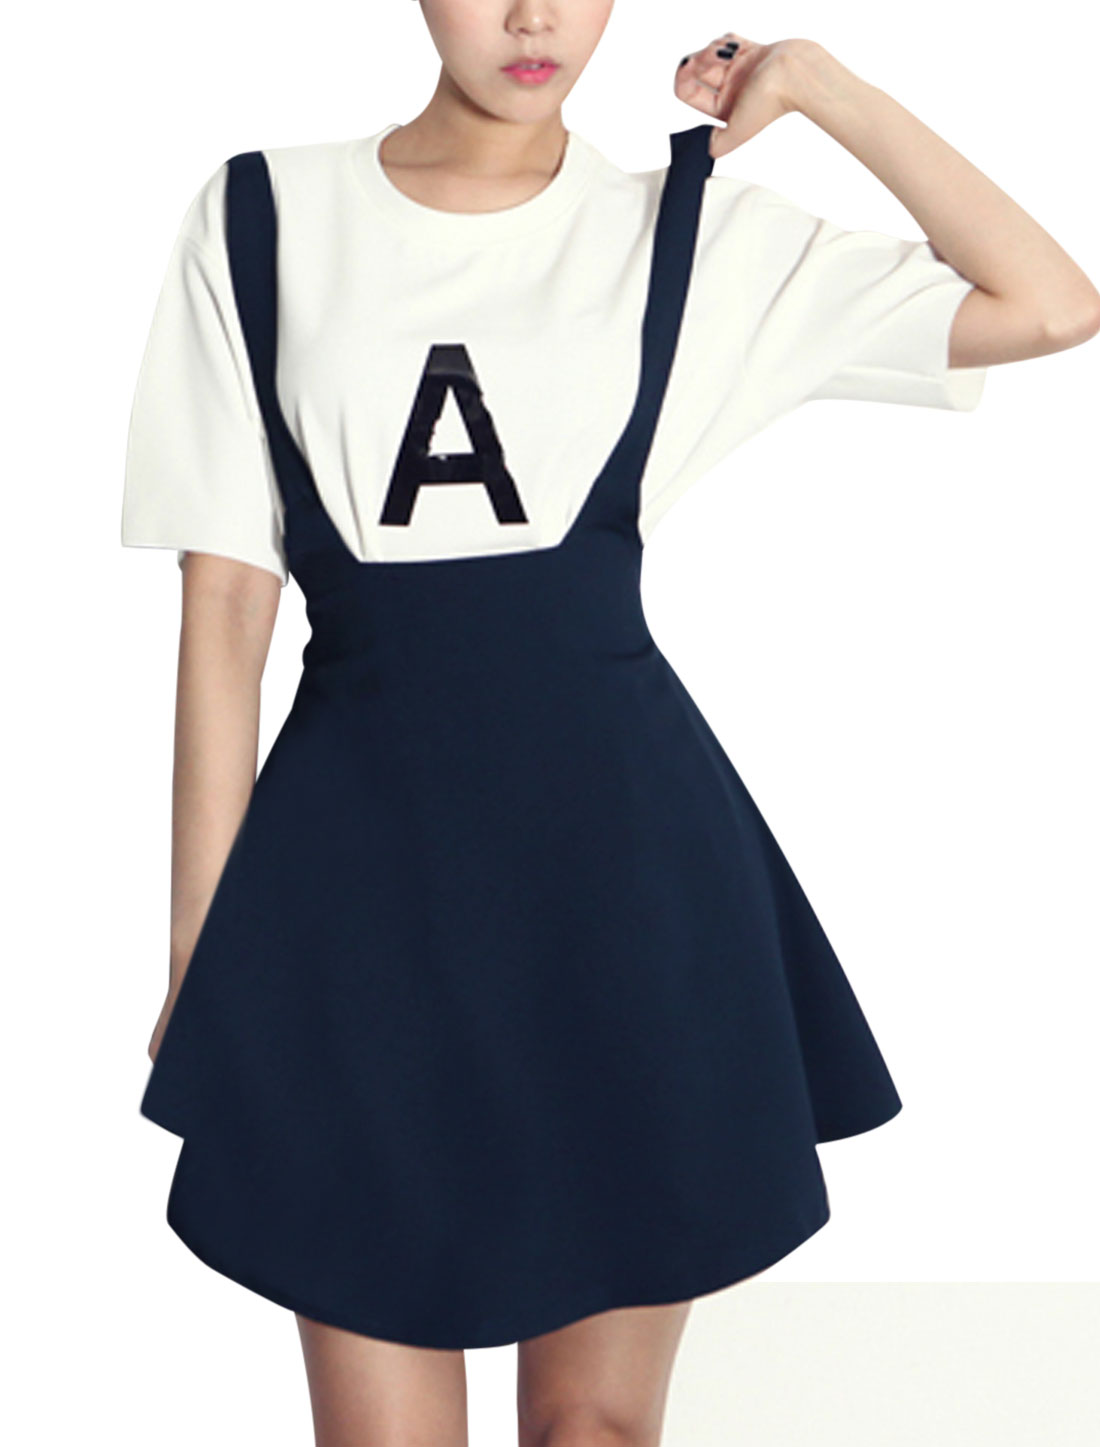 Women Letters Printed Top w Elastic Waist Suspender Skirt Navy Blue White XS